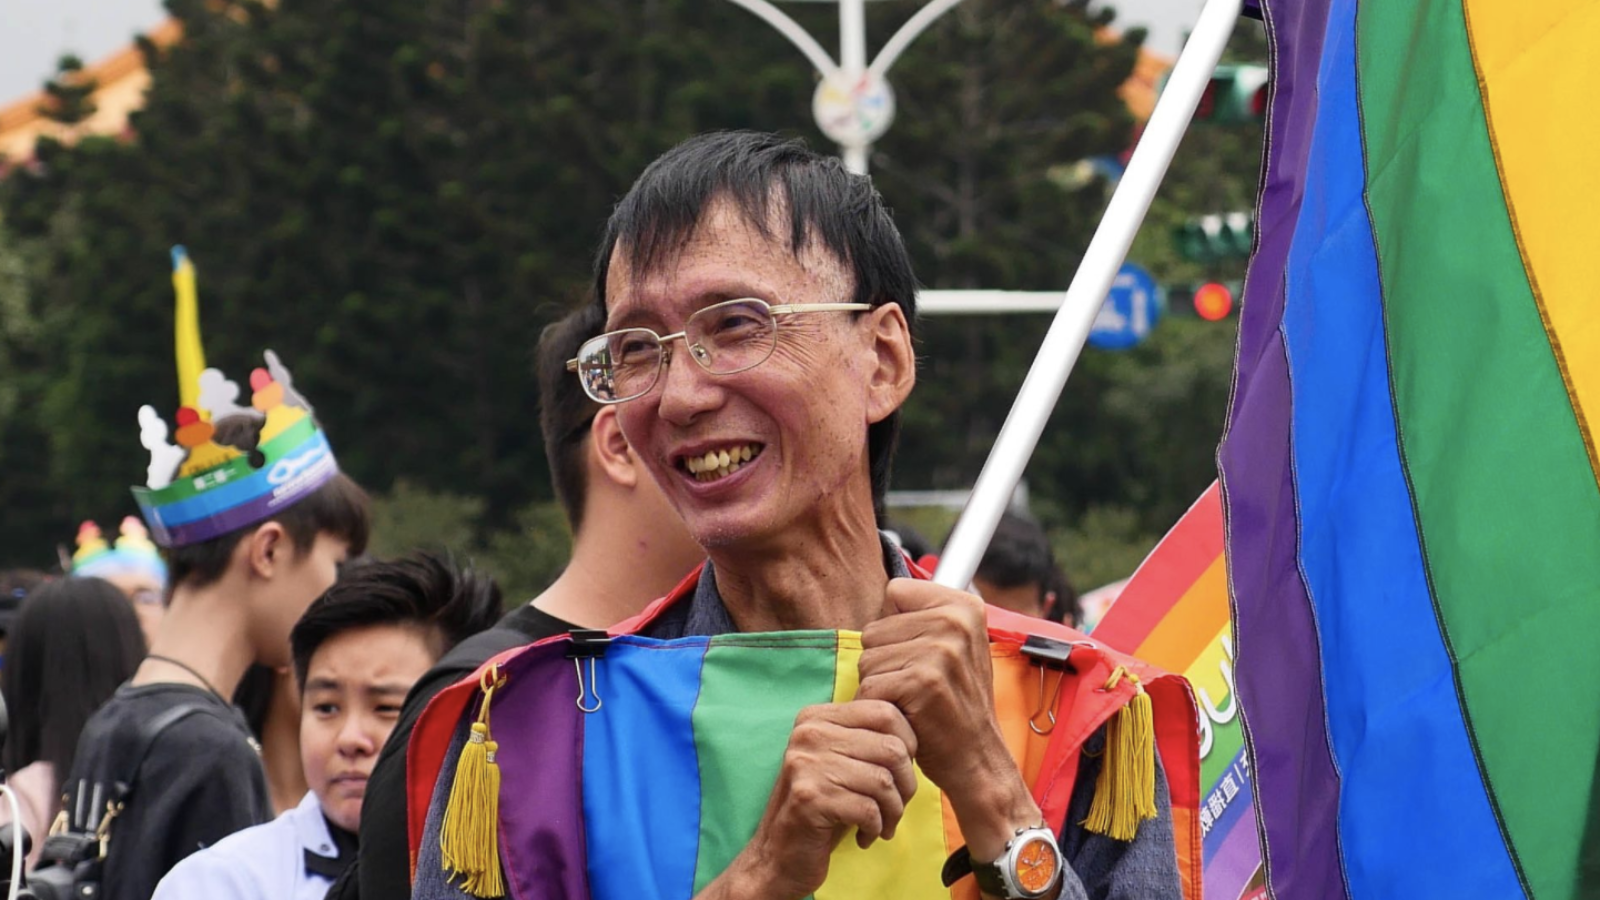 Activist Chi Chia-wei smiles holding a rainbow striped flag with a rainbow striped shirt.